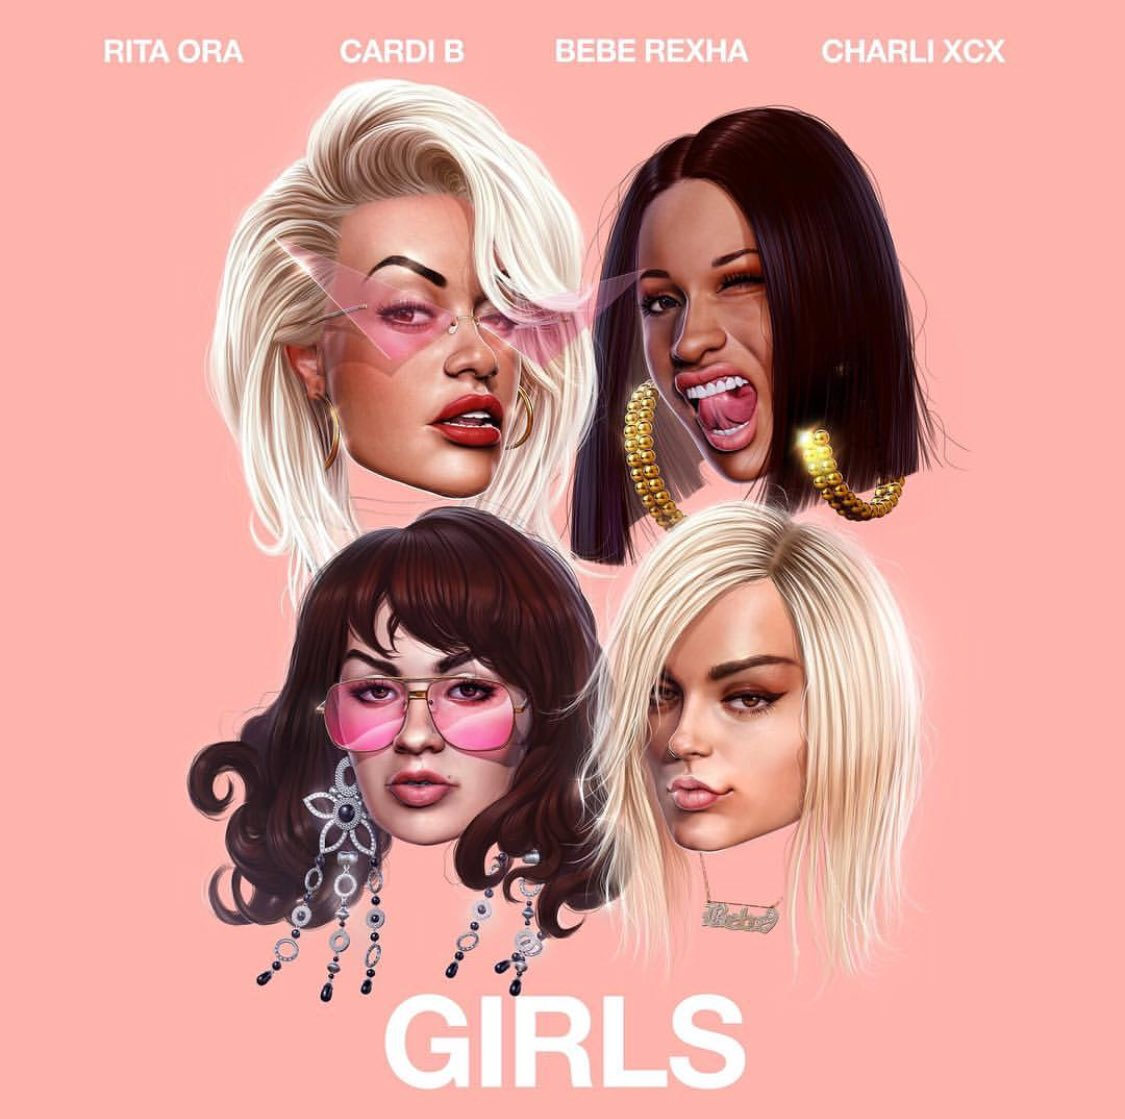 New Music: Rita Ora feat. Cardi B, Bebe Rexha, & Charli XCX – 'Girls'